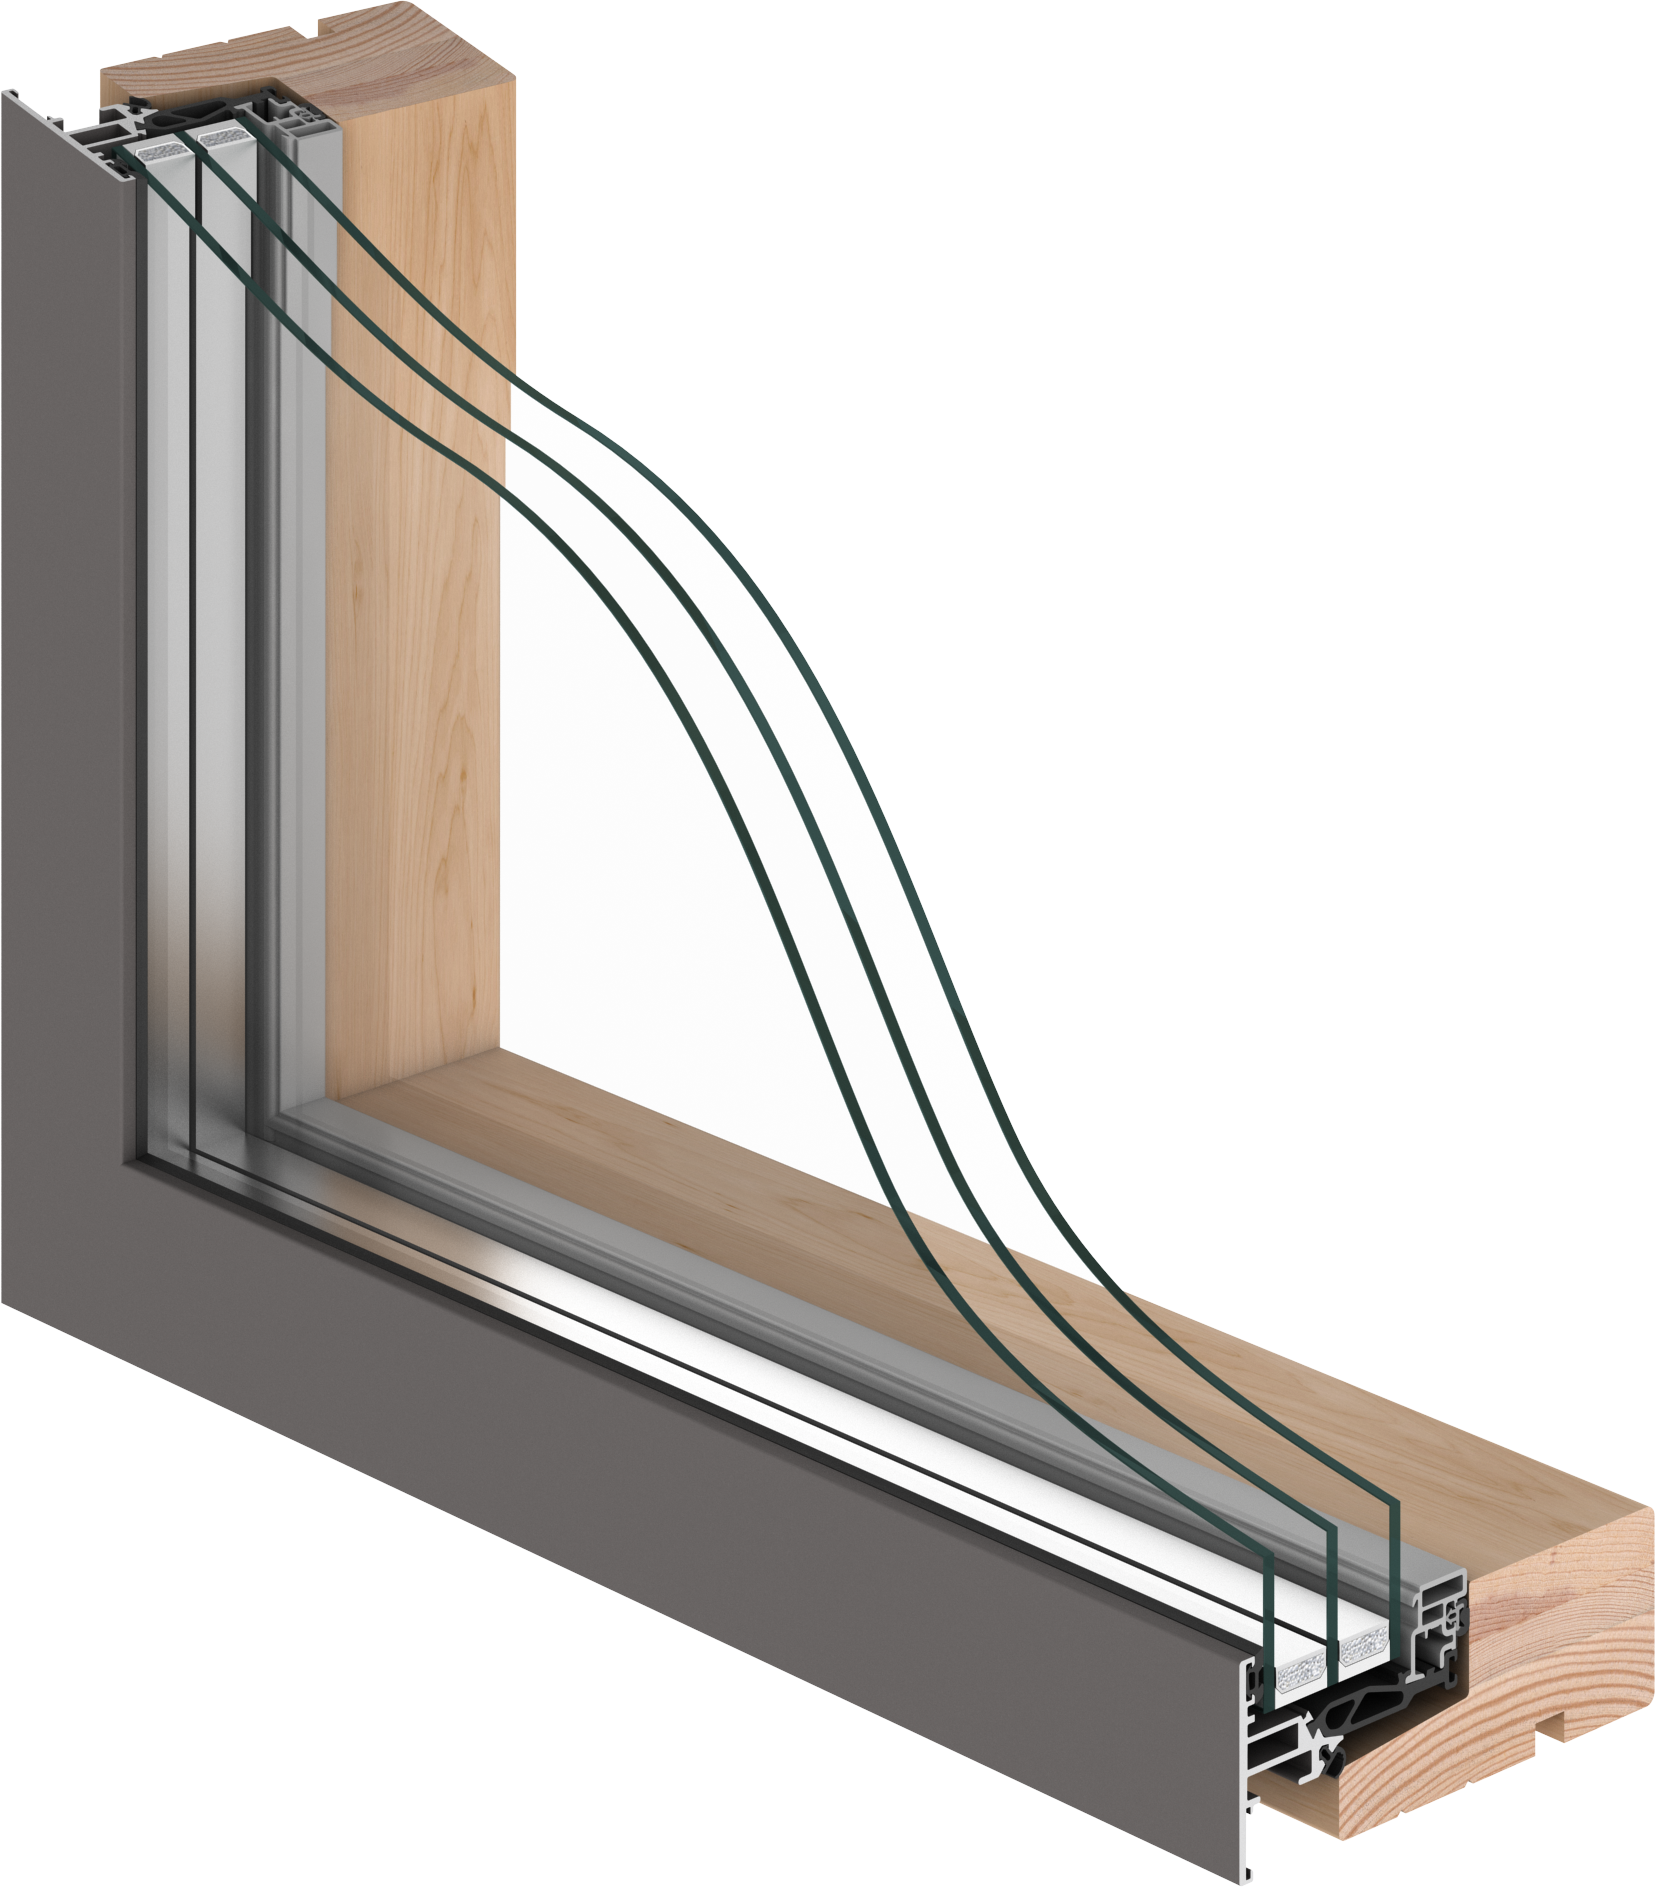 A stylish and sophisticated window with triple glazing